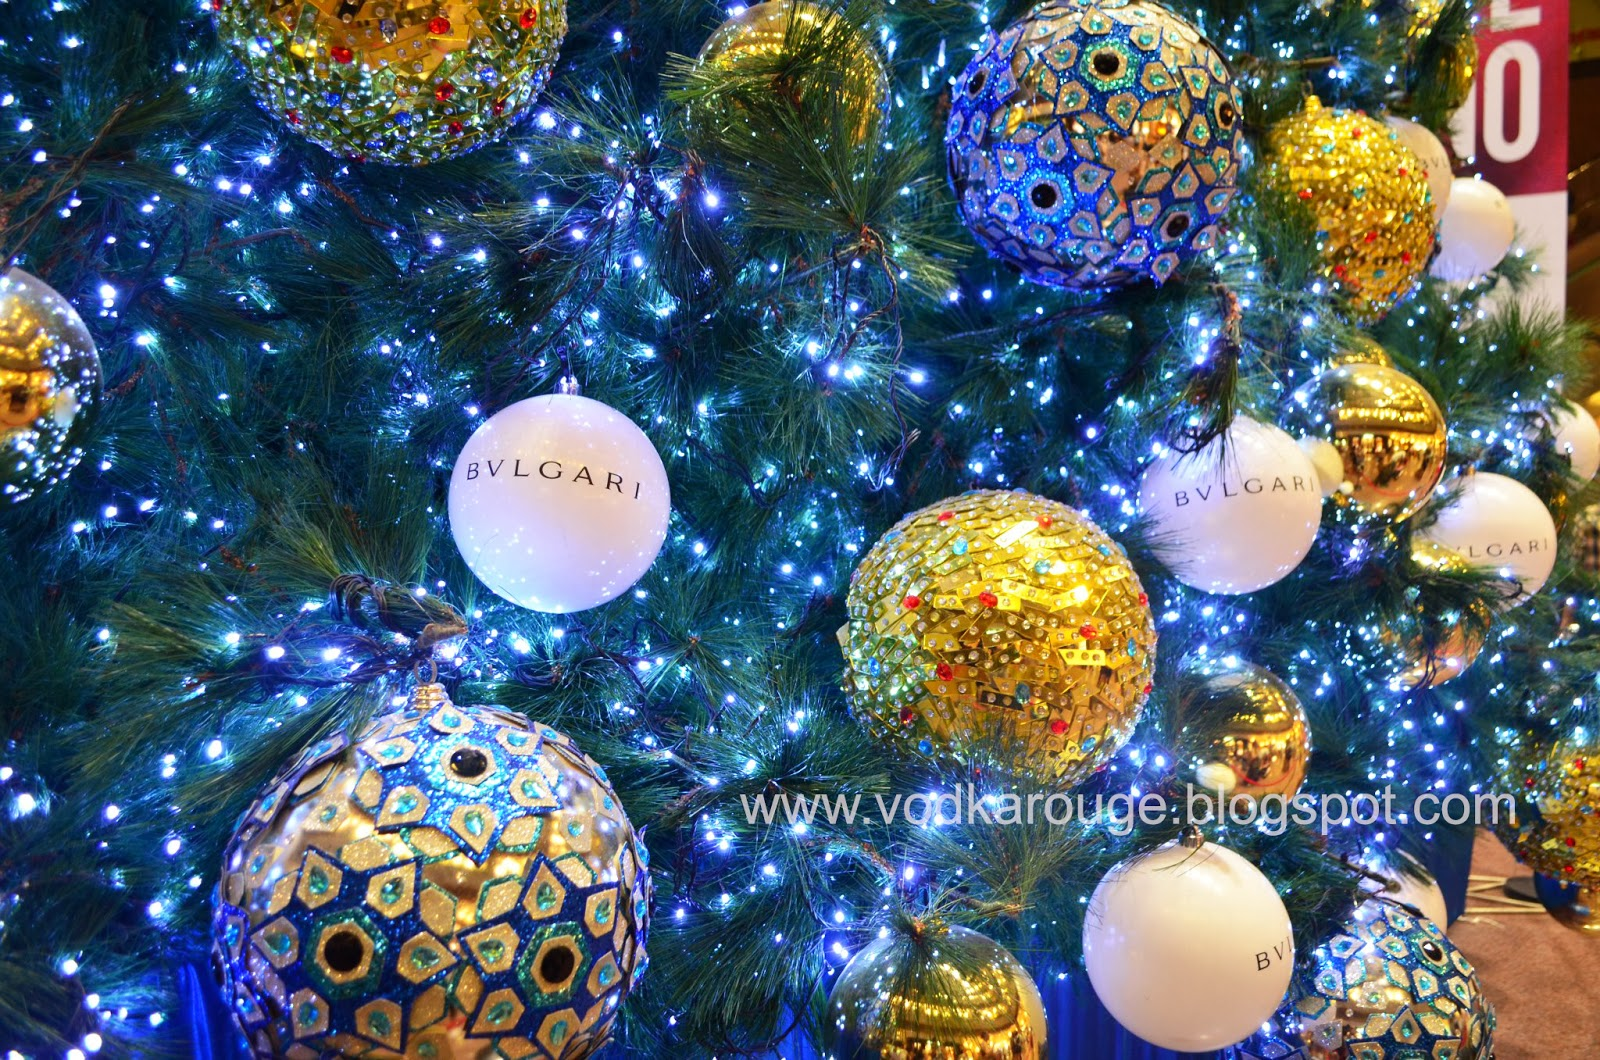 Vodkarouge 8 Ideas For Places To Visit This Christmas 2013 In Singapore